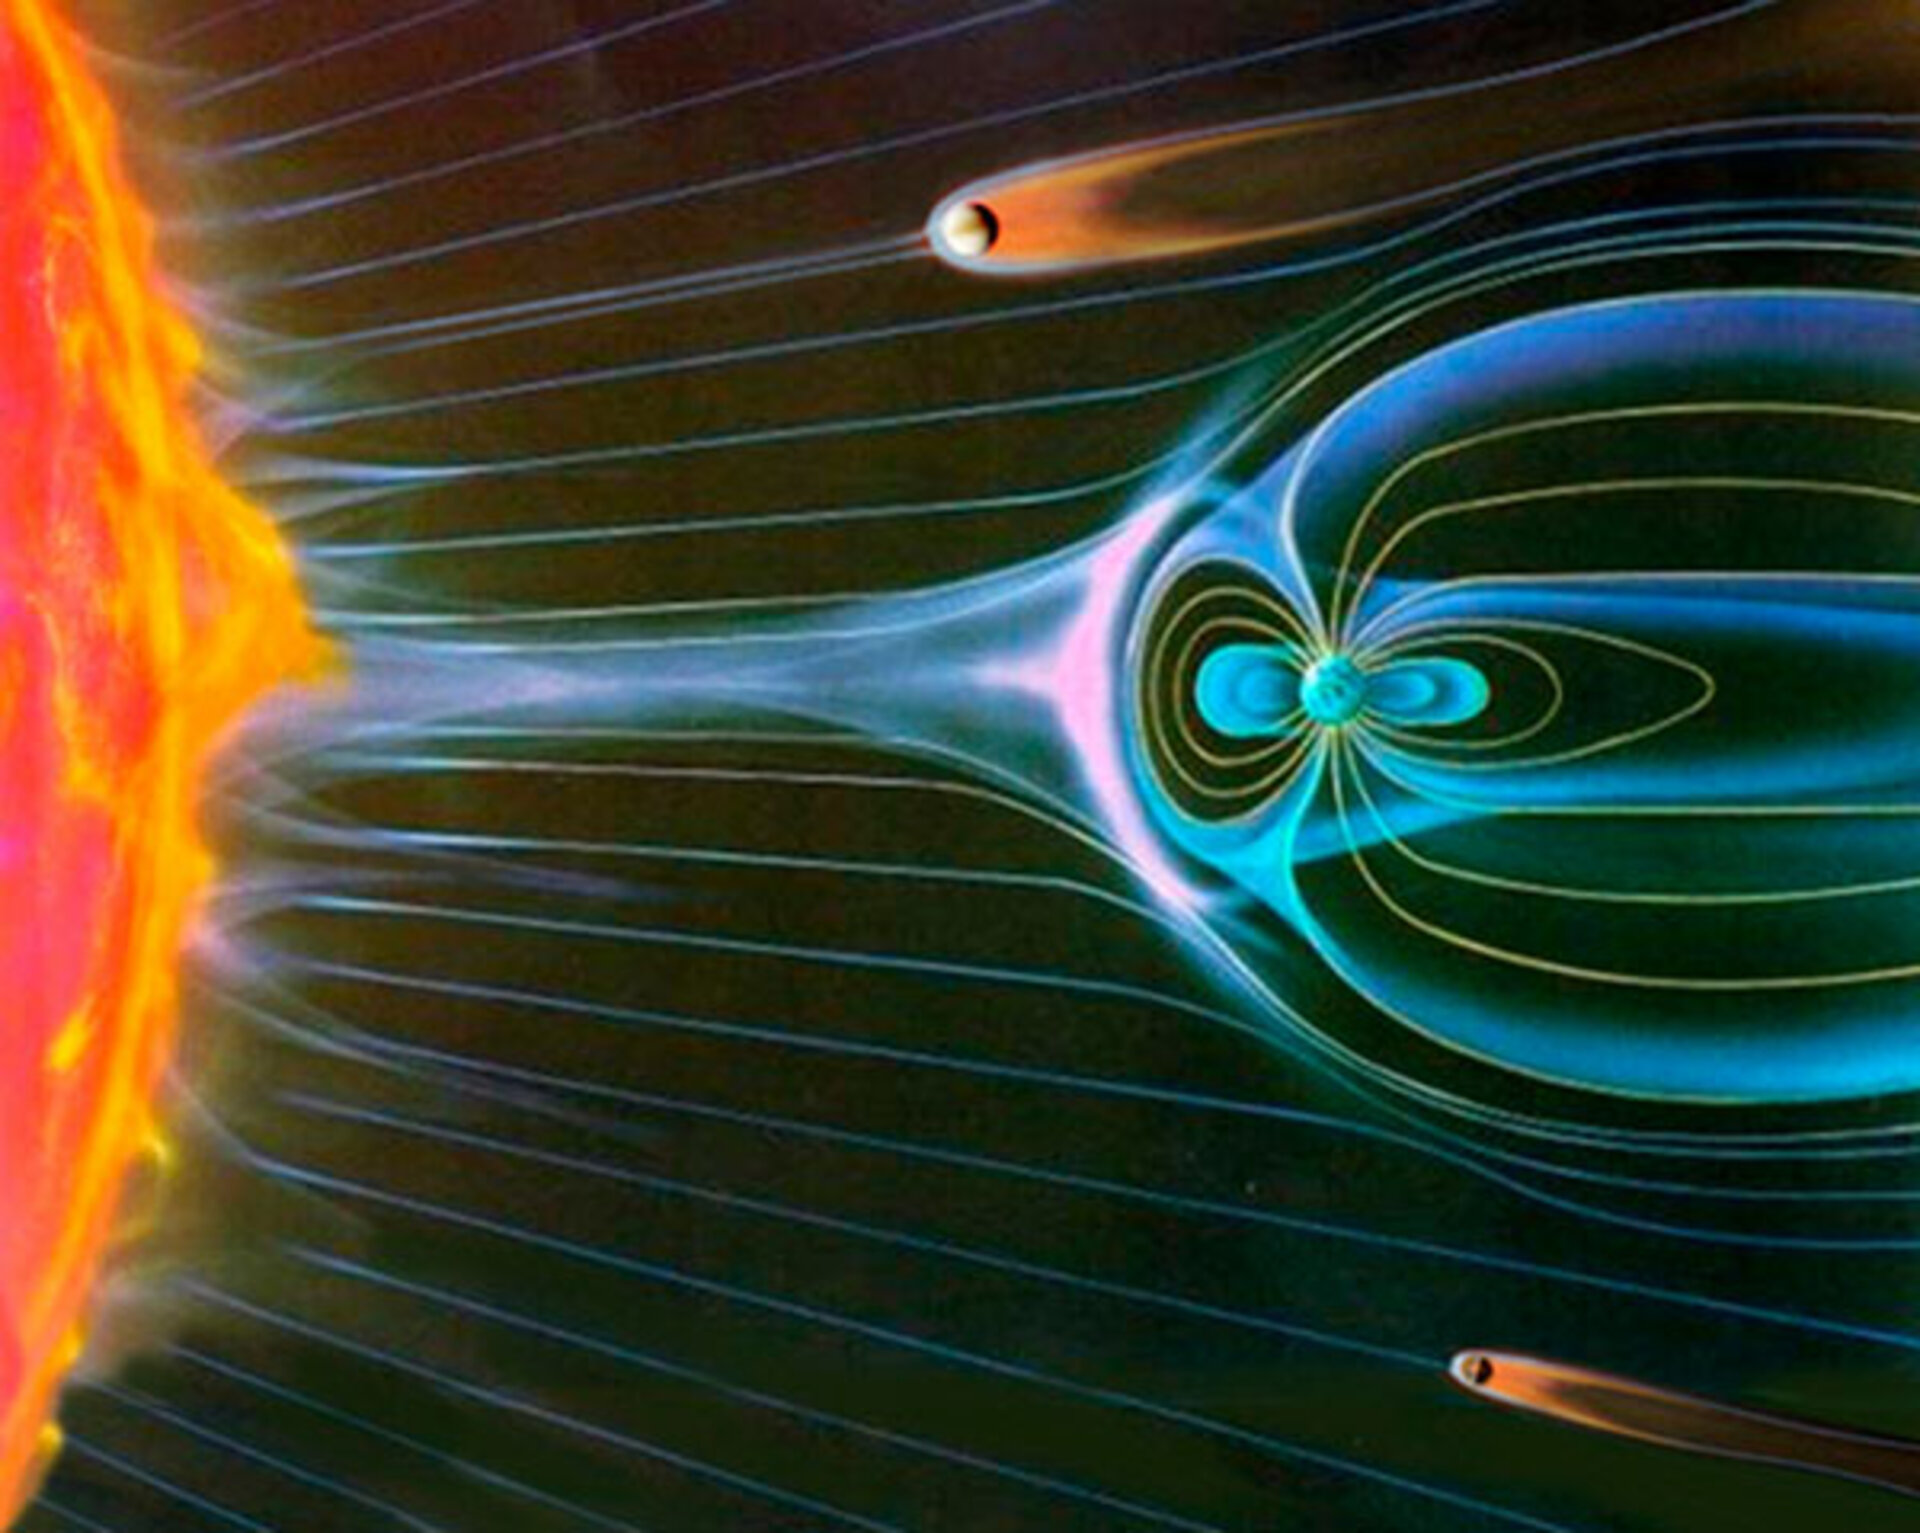 Artist's impression of Venus, Earth and Mars interacting with the solar wind.